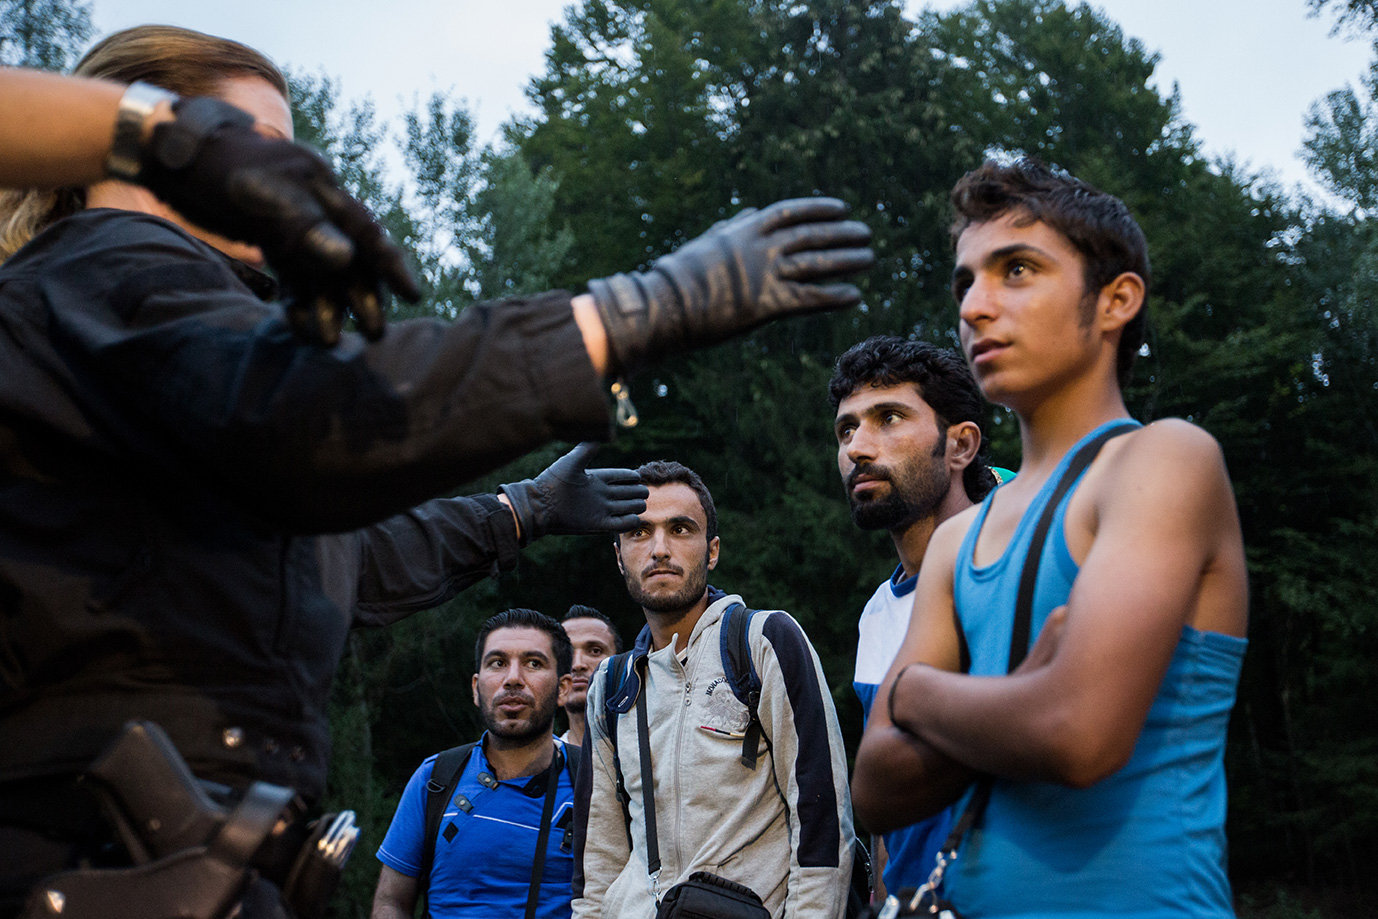 09_refugees-syria-get-checked-German police-arriving